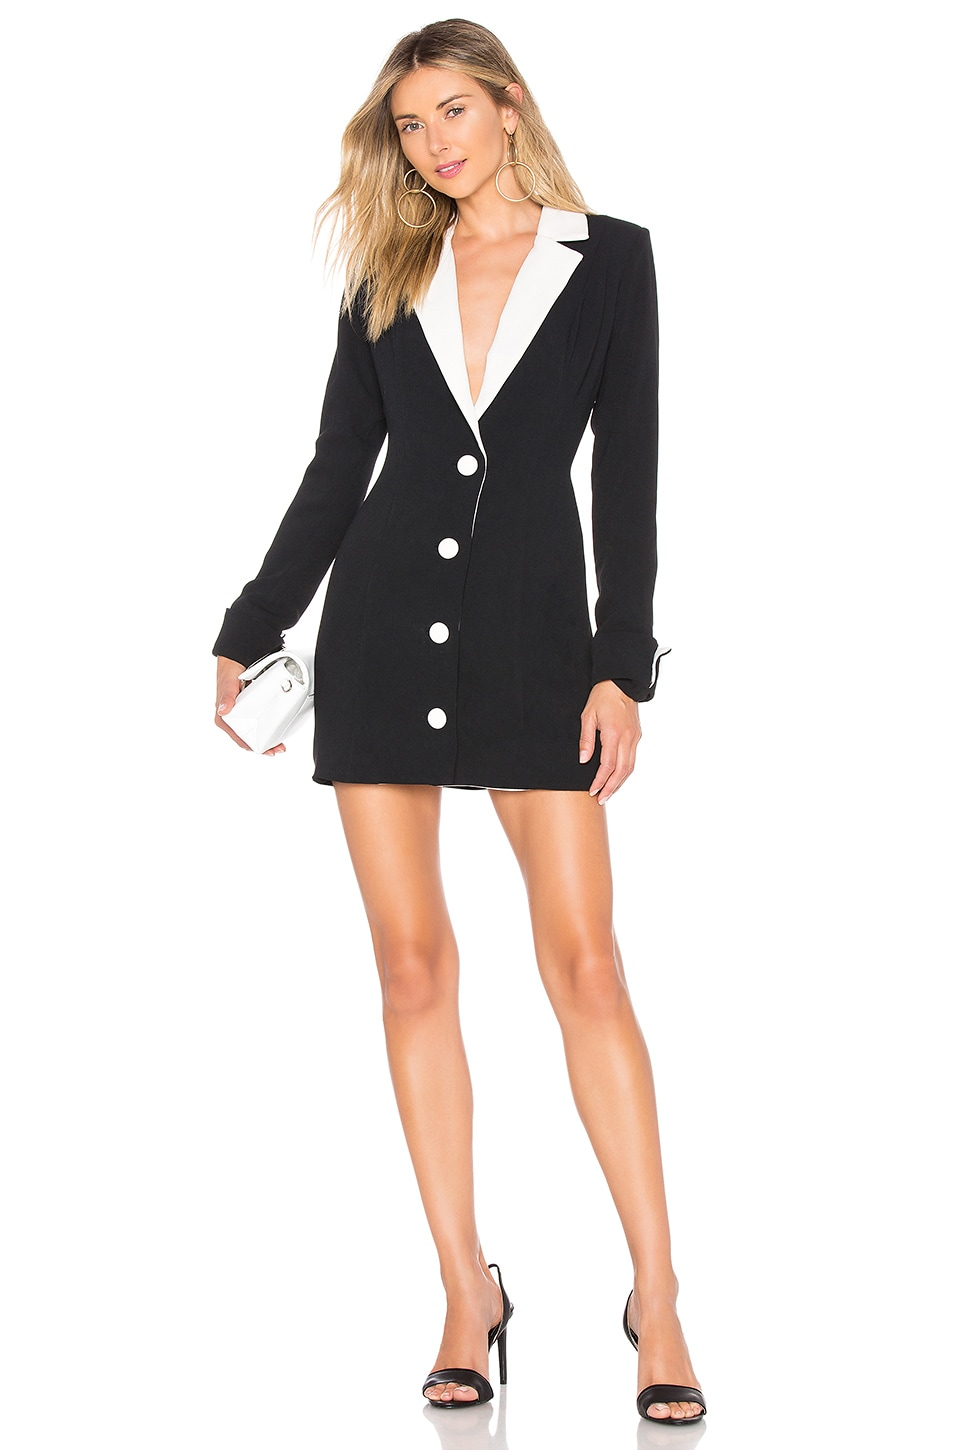 Chrissy Teigen x REVOLVE Camden Suit Dress in Black